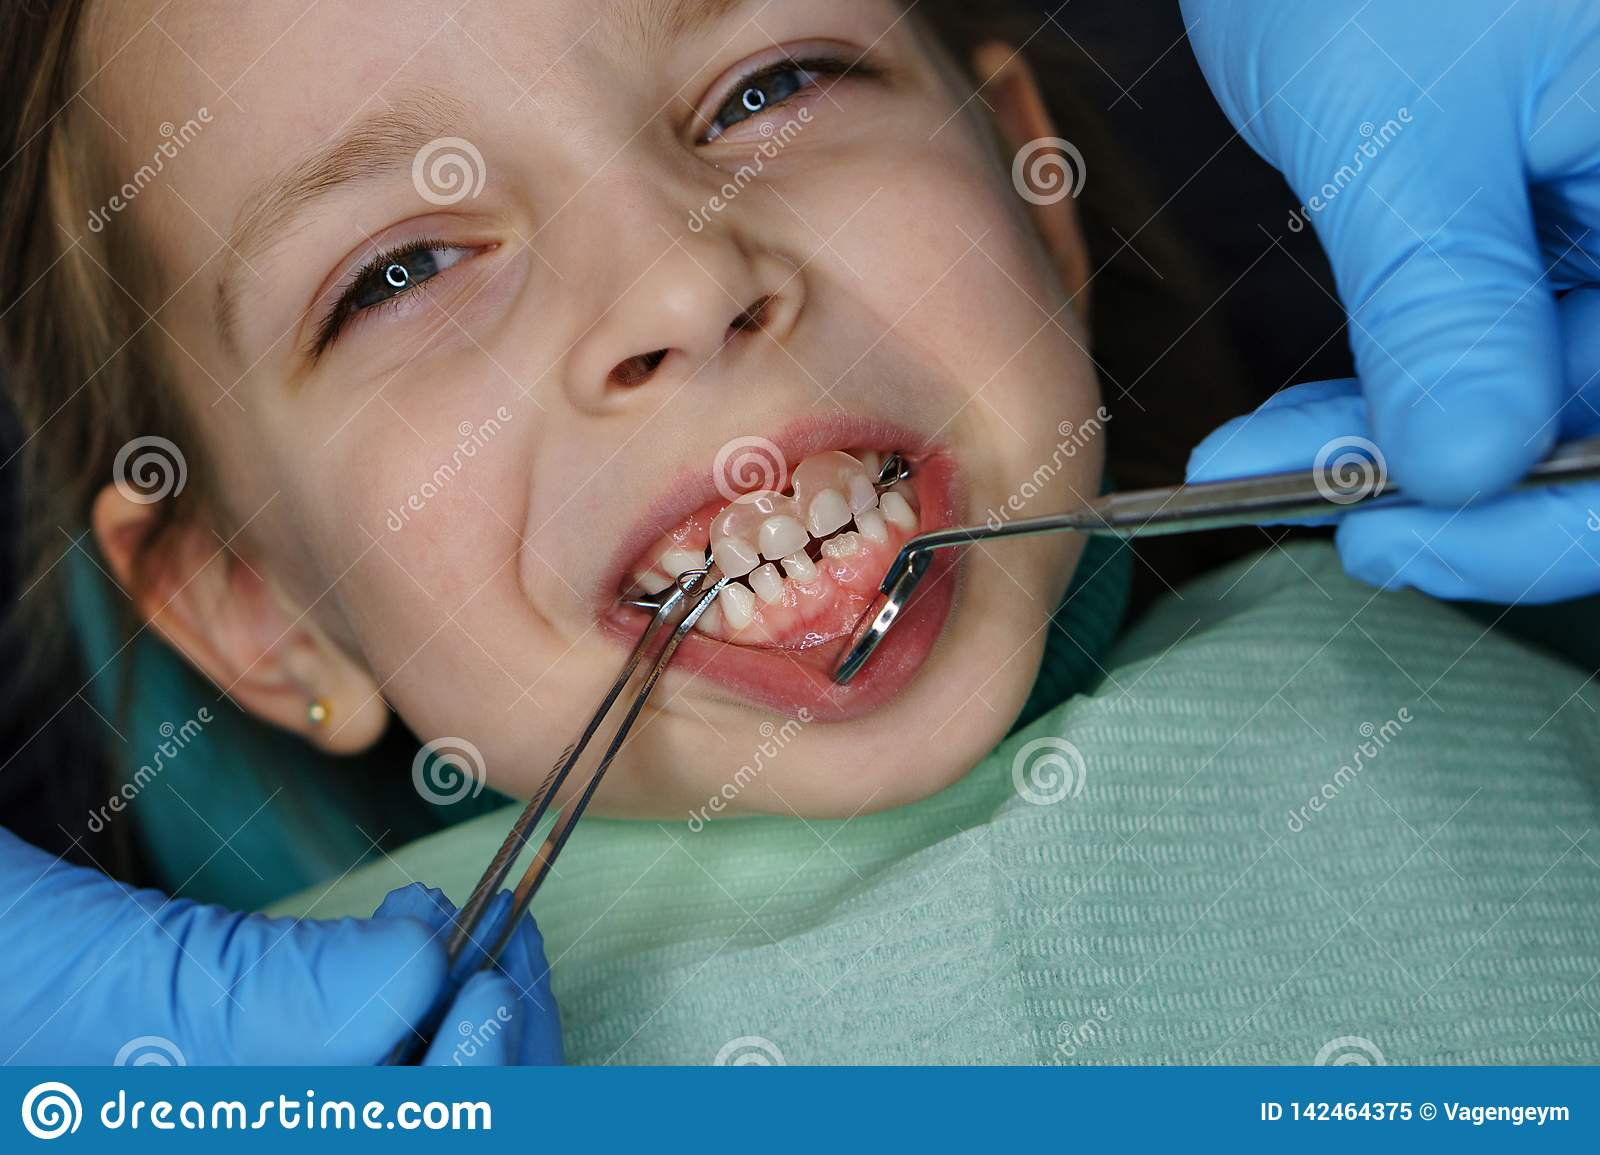 Little girl at dentist on examination